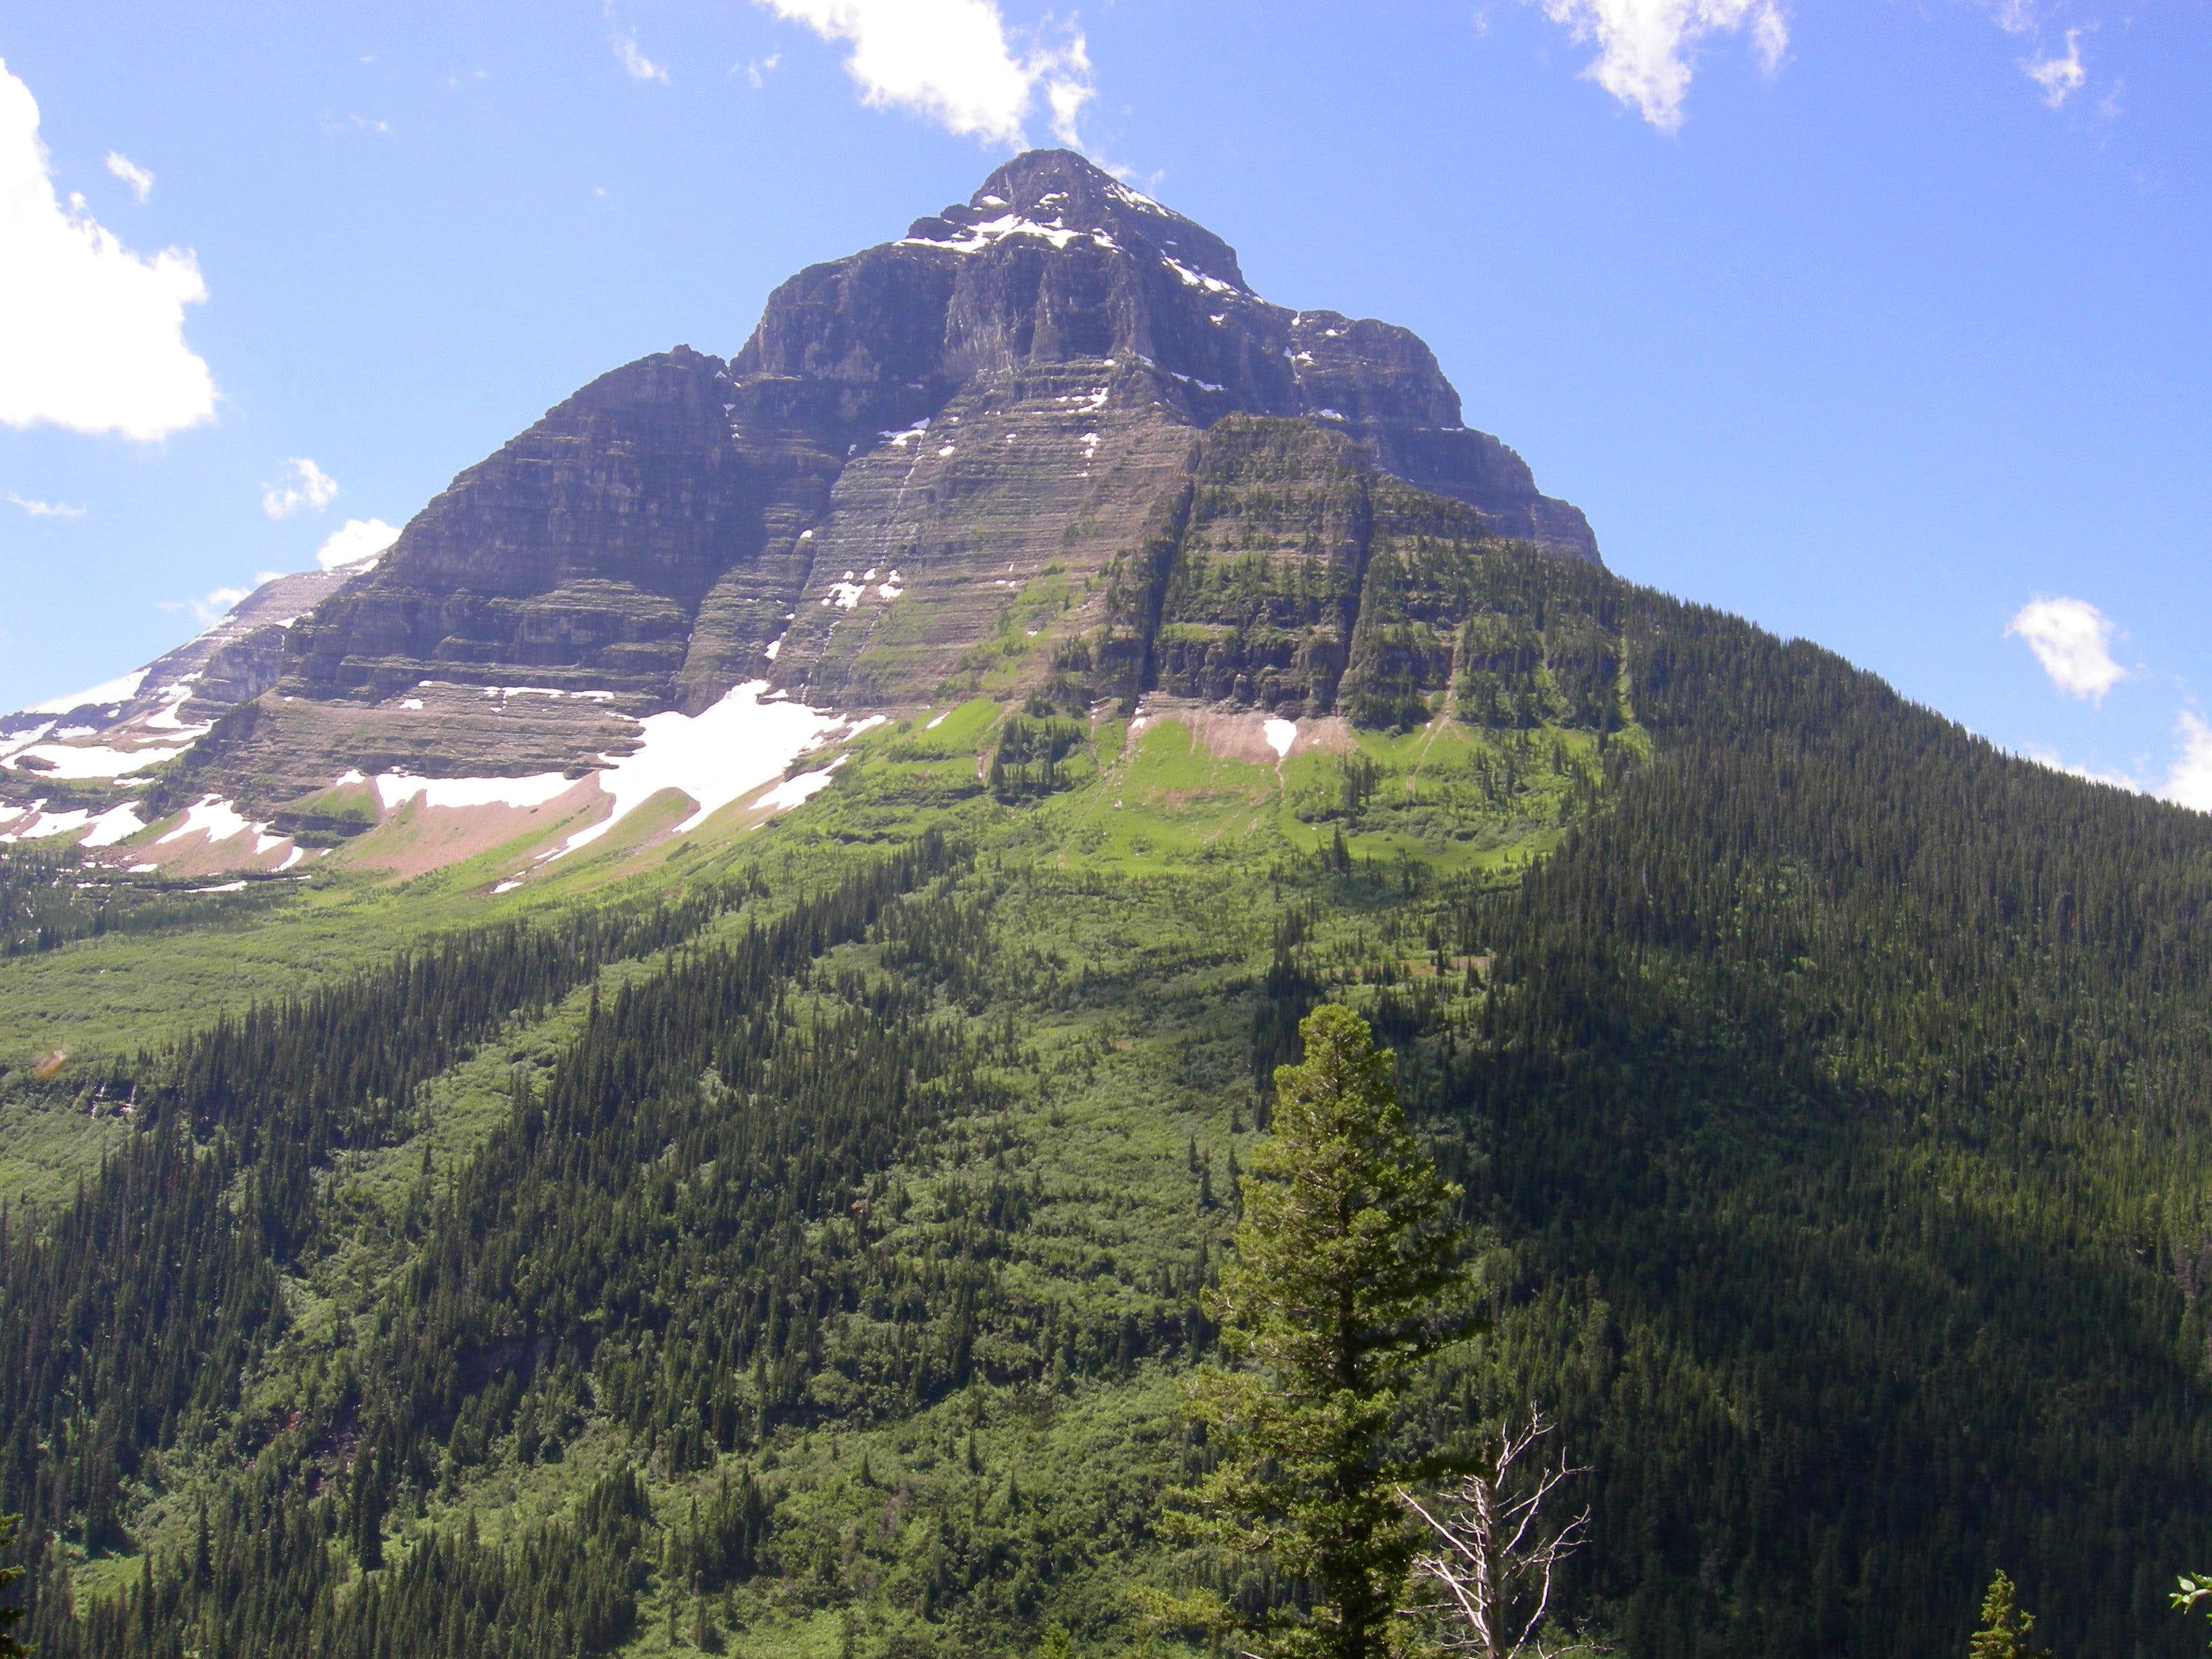 Kinnerly Peak